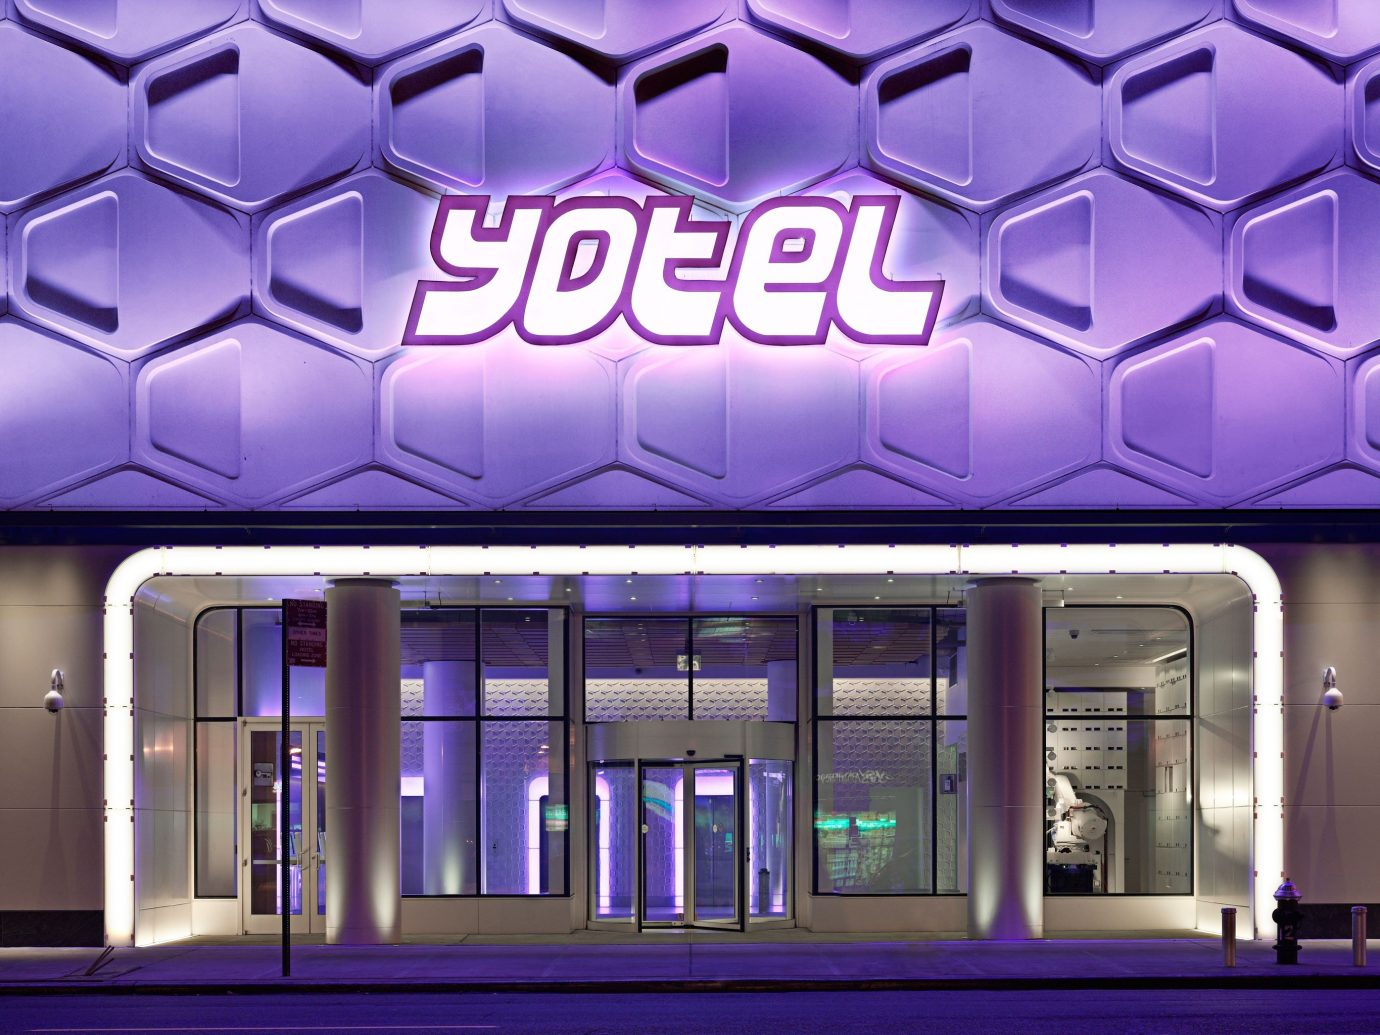 Hotels building facade interior design Design theatre outdoor object signage convention center retail headquarters purple